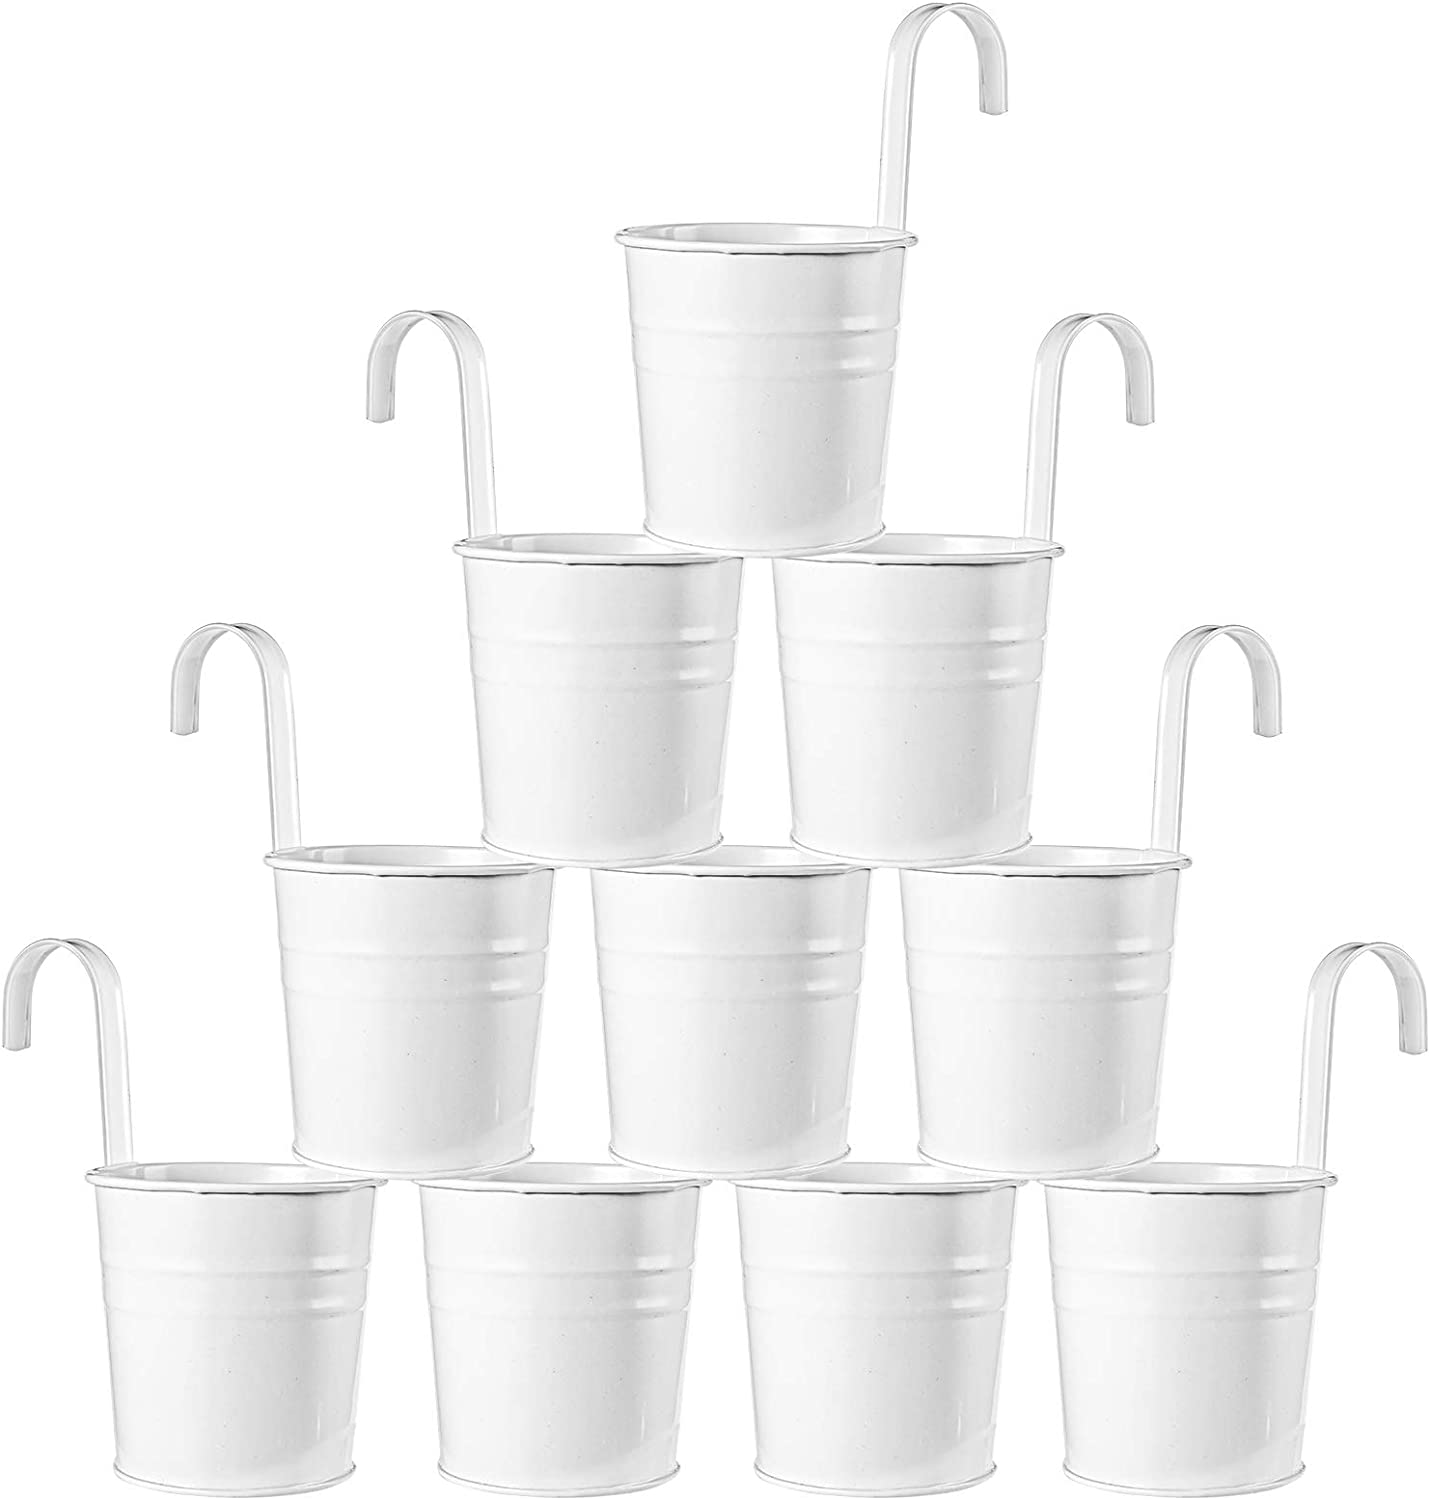 Price reduction Foraineam 10 Pcs Hanging Flower Pots Cheap mail order sales Metal Balcony White Bucket